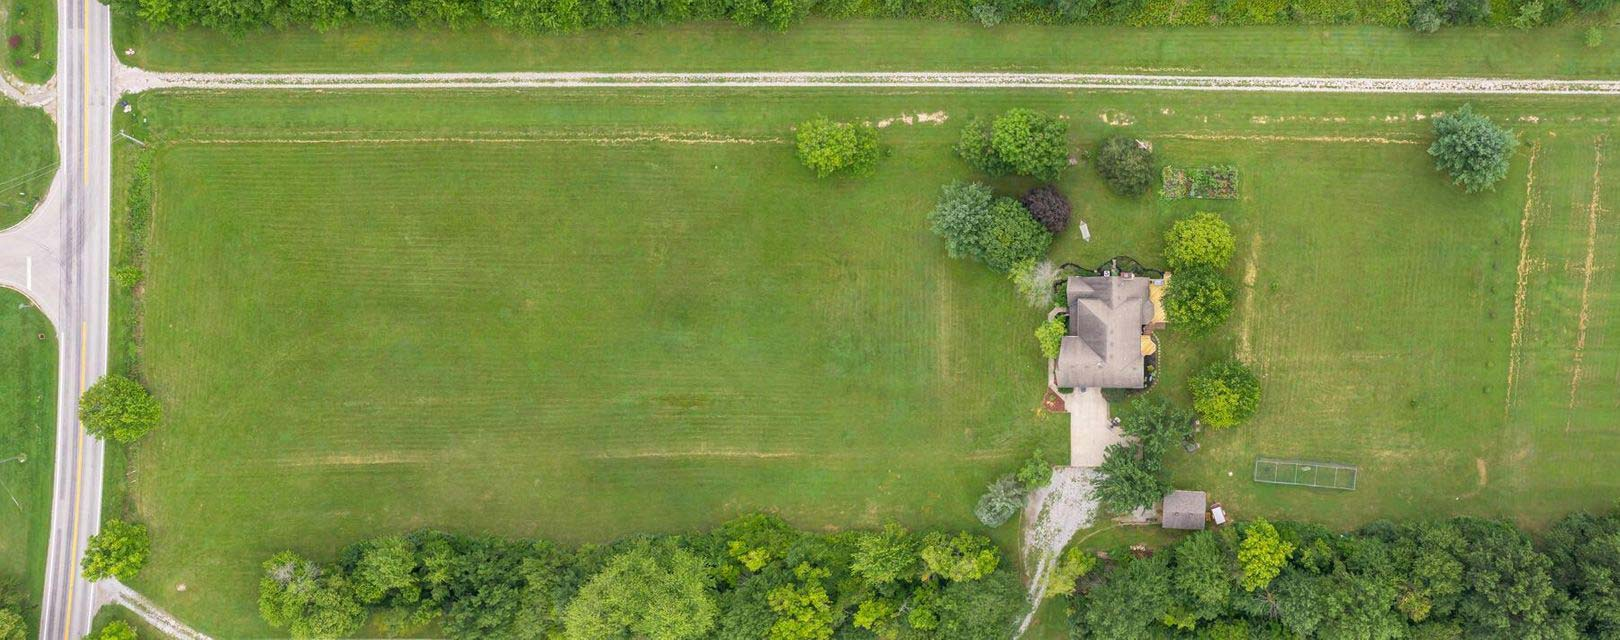 9353 State Routh 37, Marysville, Ohio 43040, 4 Bedrooms Bedrooms, ,3 BathroomsBathrooms,Single Family Home,For Sale,State Routh 37,1078